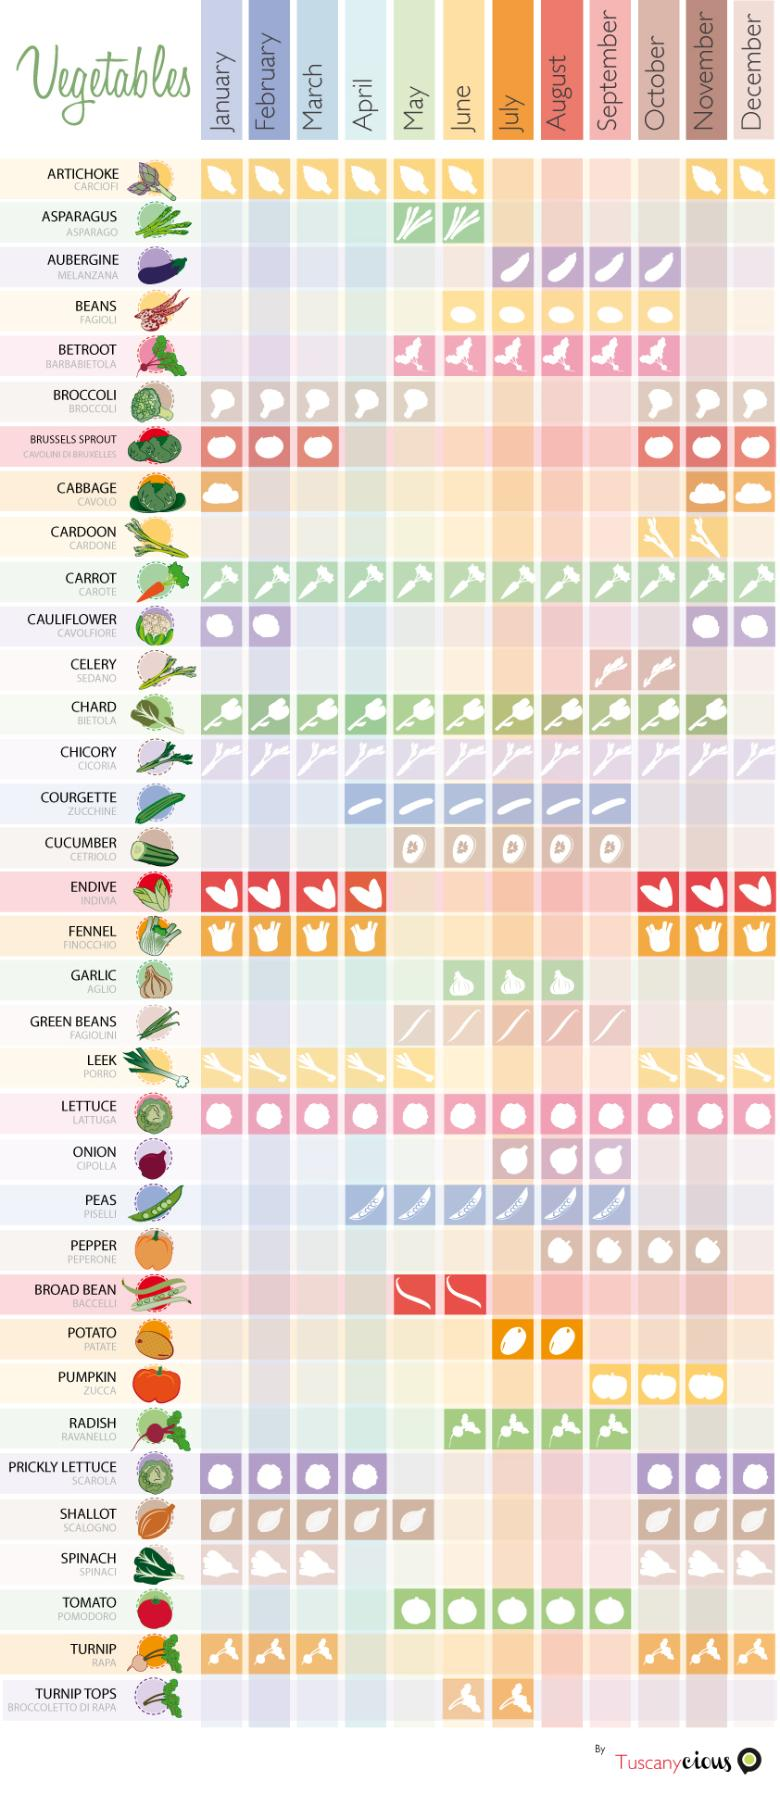 Tuscan vegetables calendar